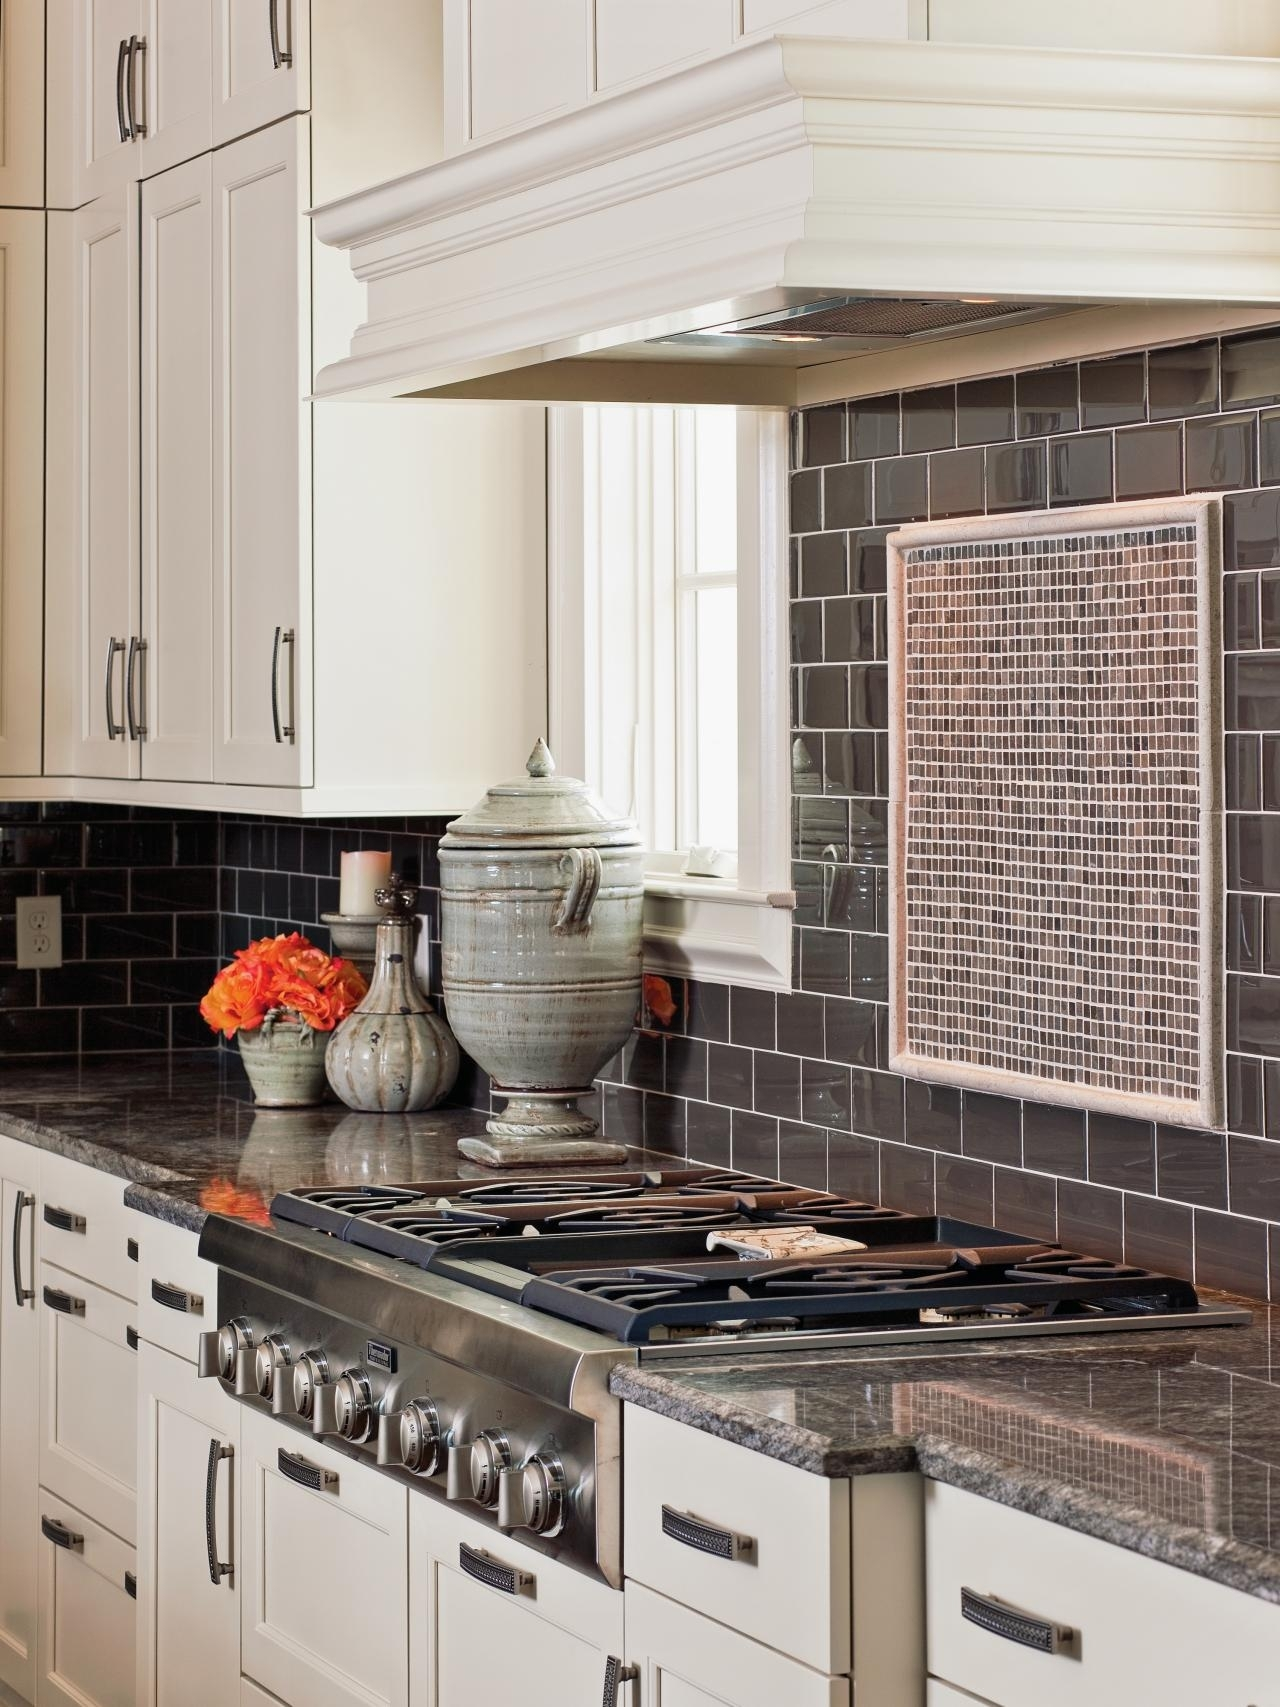 subway tile backsplashes: pictures, ideas & tips from hgtv | hgtv